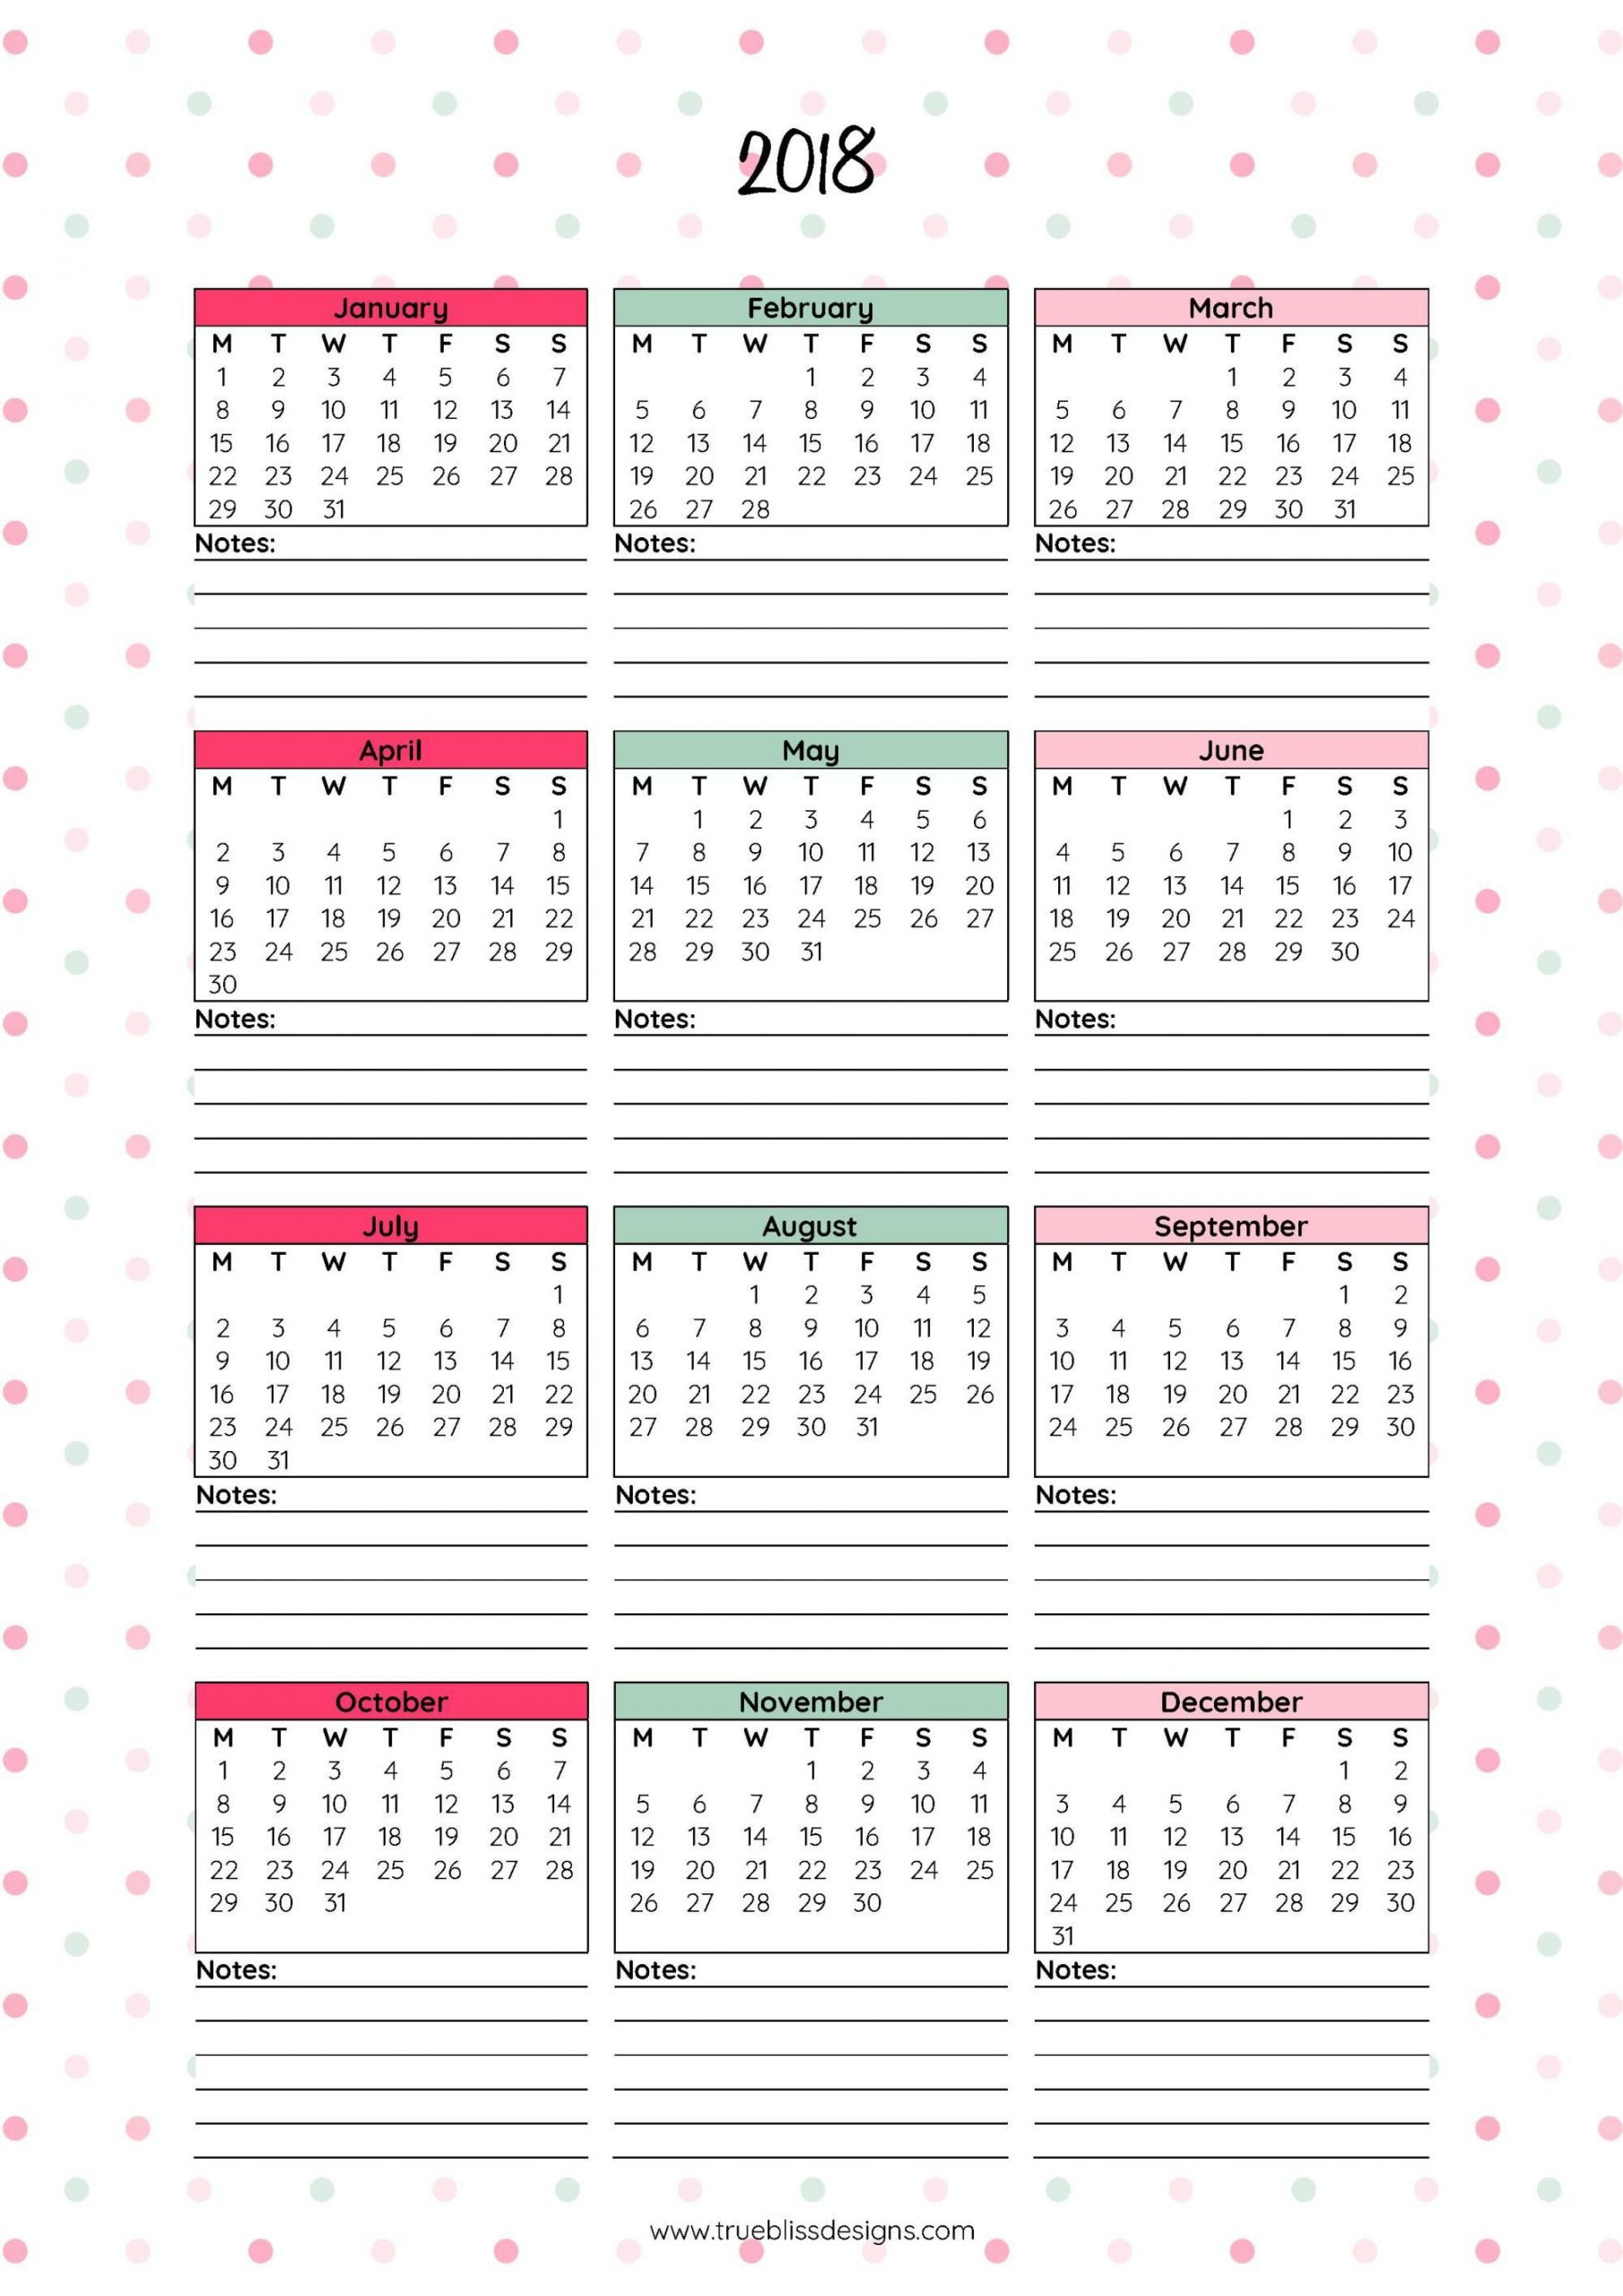 2018 Monthly Printable Calendar - Let's Do This | At A